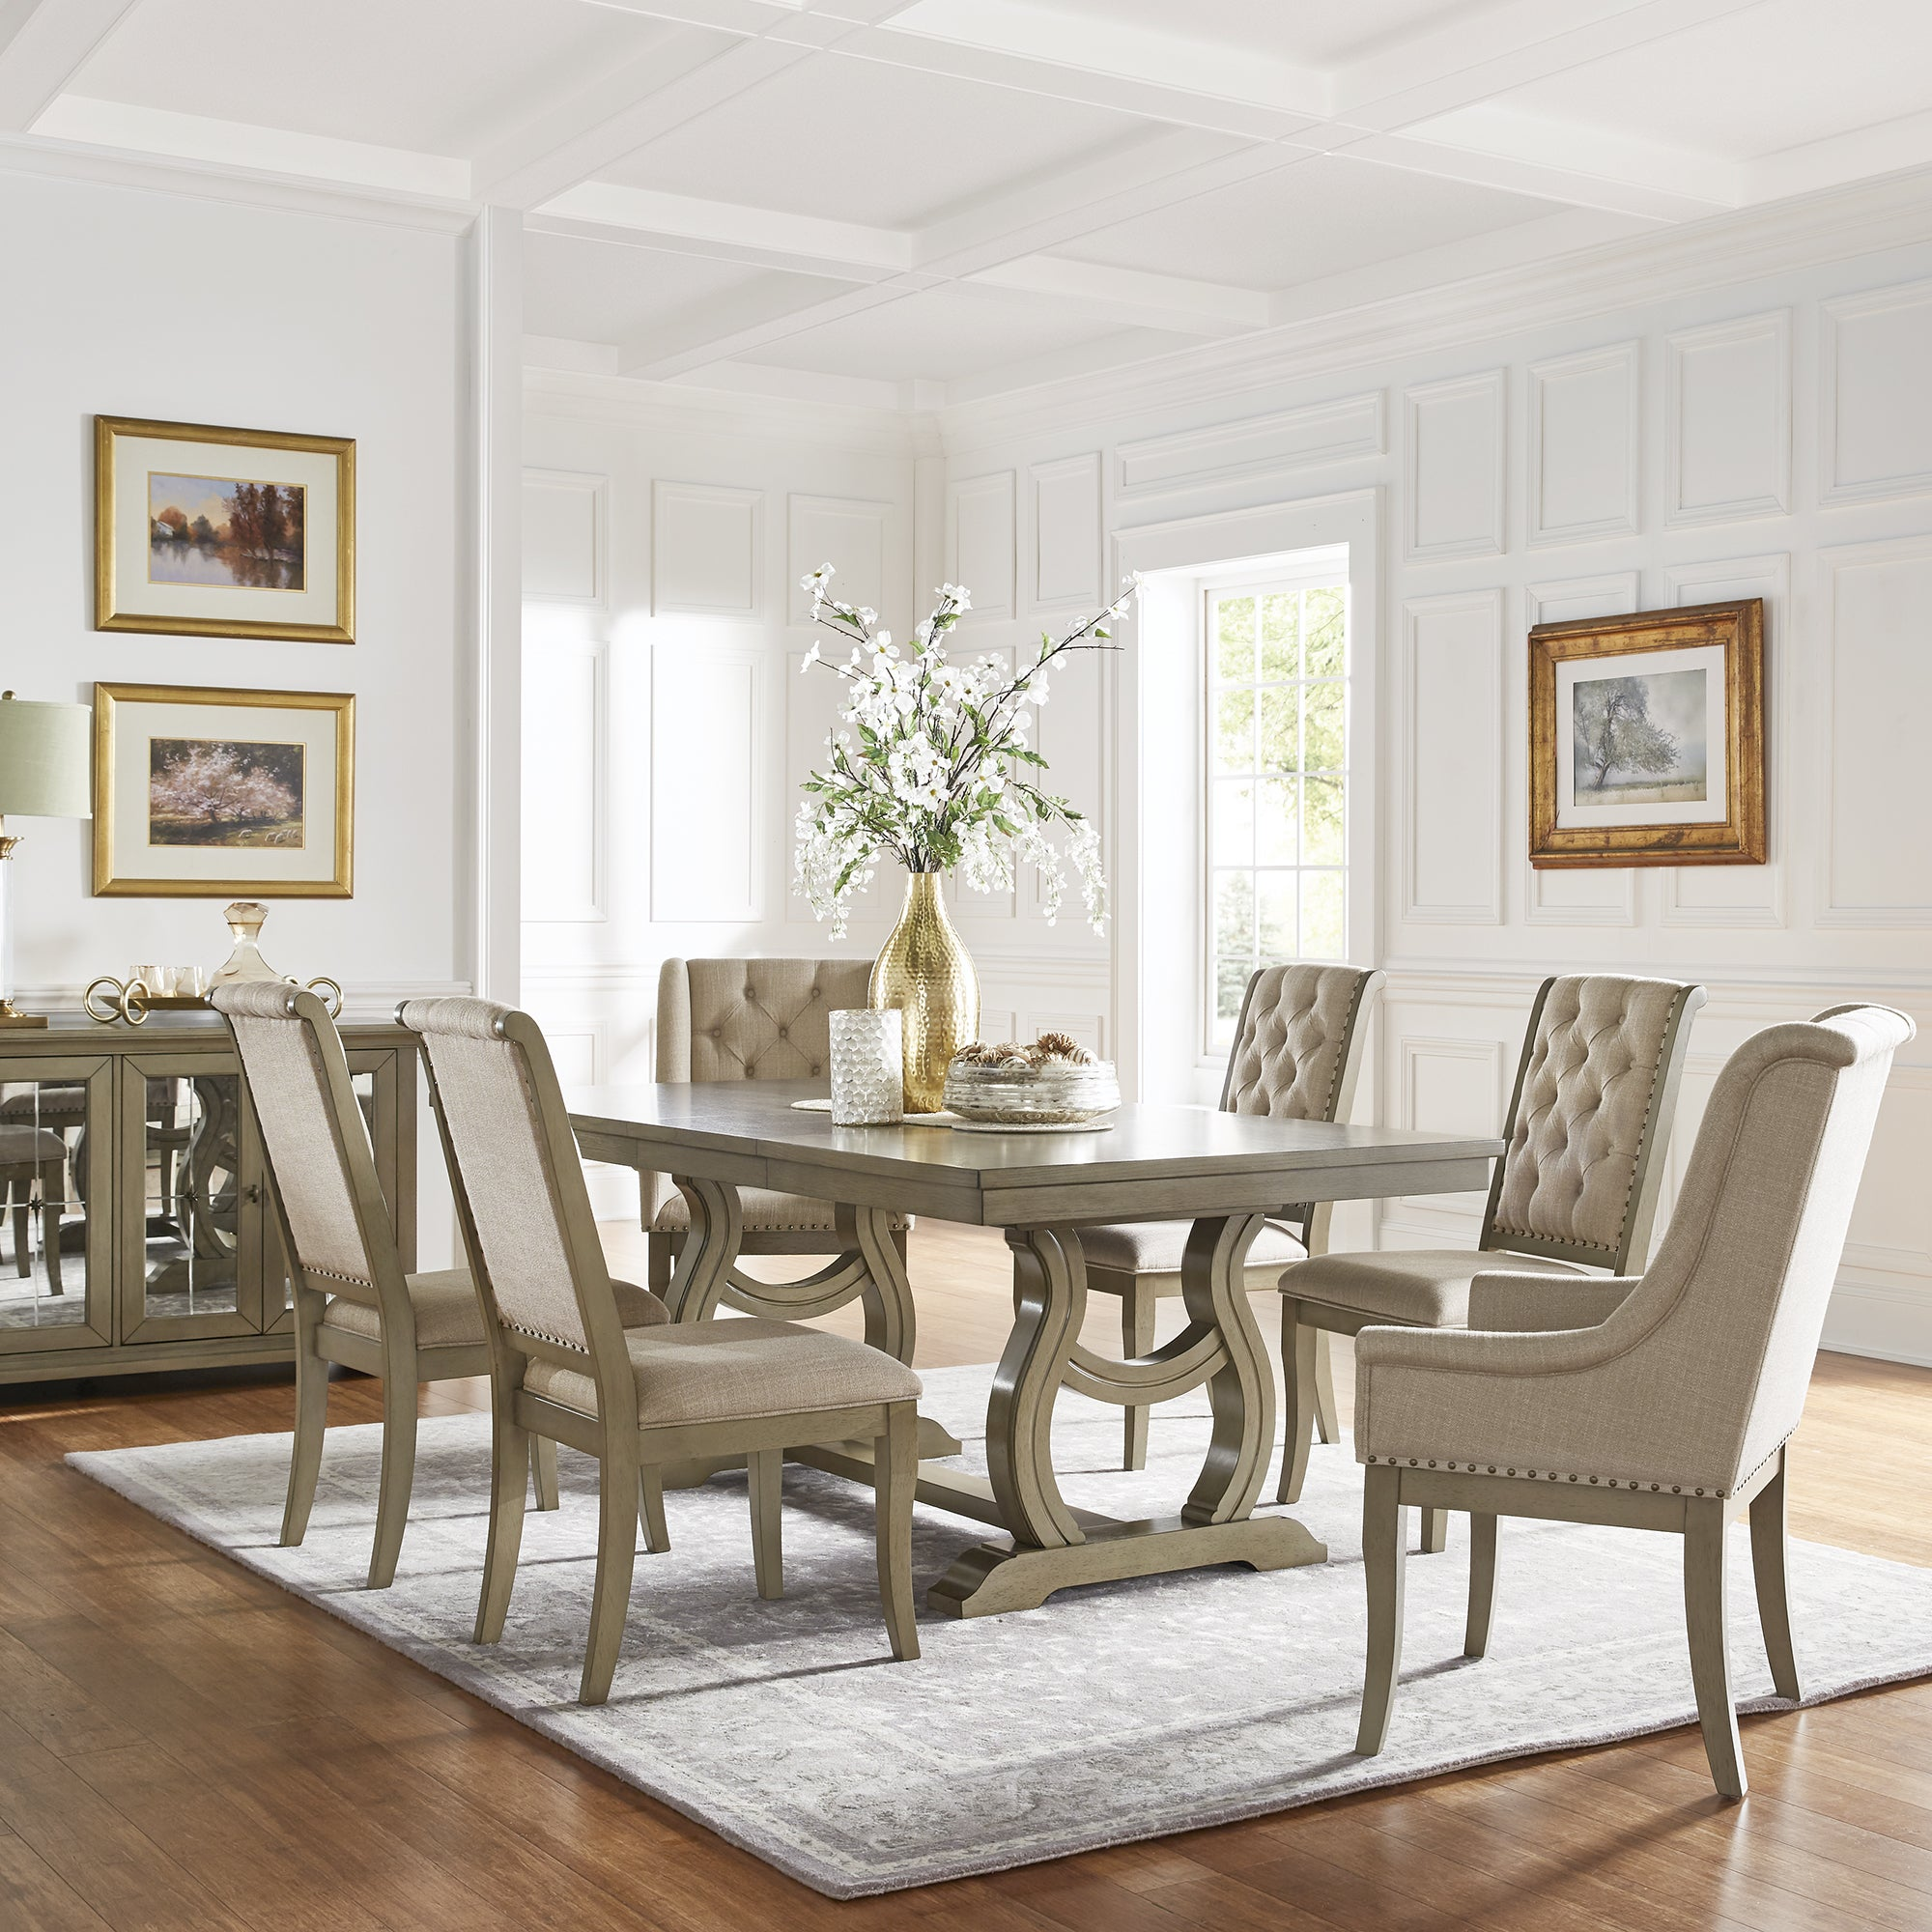 The Gray Barn Camilla Trestle Base Dining Table with Cream Tufted Nailhead  Dining Chair